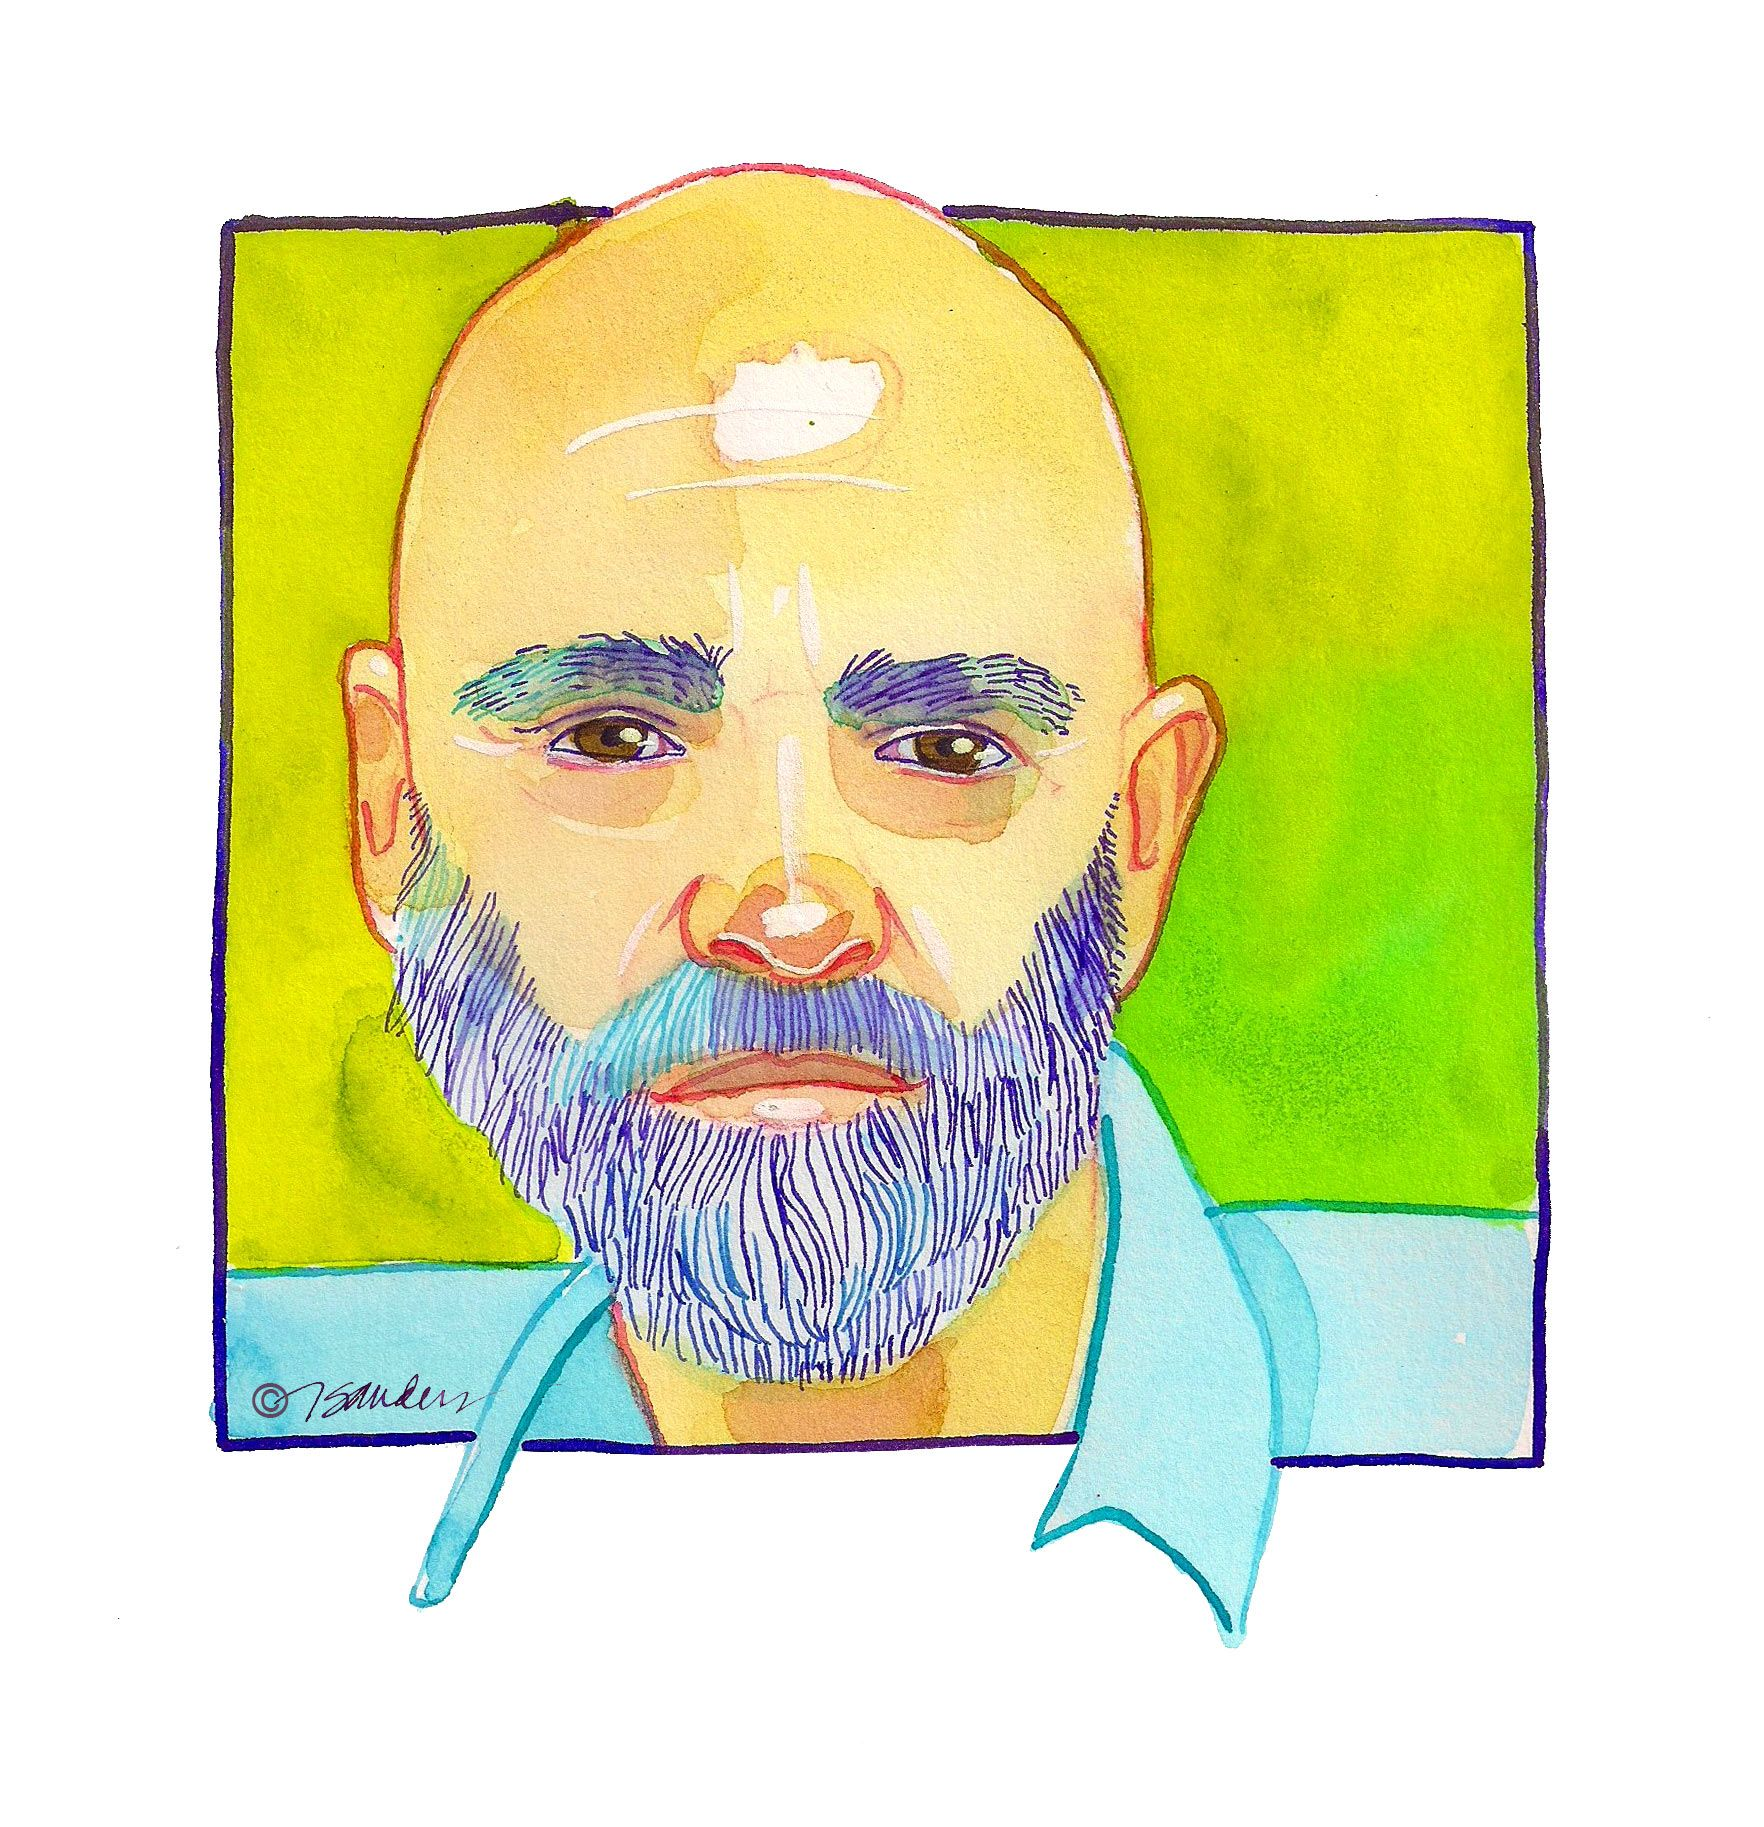 "Fine Art Daily - October 18  Today is writer and illustrator Shel Silverstein's birthday.  ""Draw a crazy picture,  Write a nutty poem, Sing a mumble-gumble song, Whistle through your comb.  Do a loony-goony dance  'Cross the kitchen floor,  Put something silly in the world  That ain't been there before.""  ― Shel Silverstein  http://www.shelsilverstein.com/"